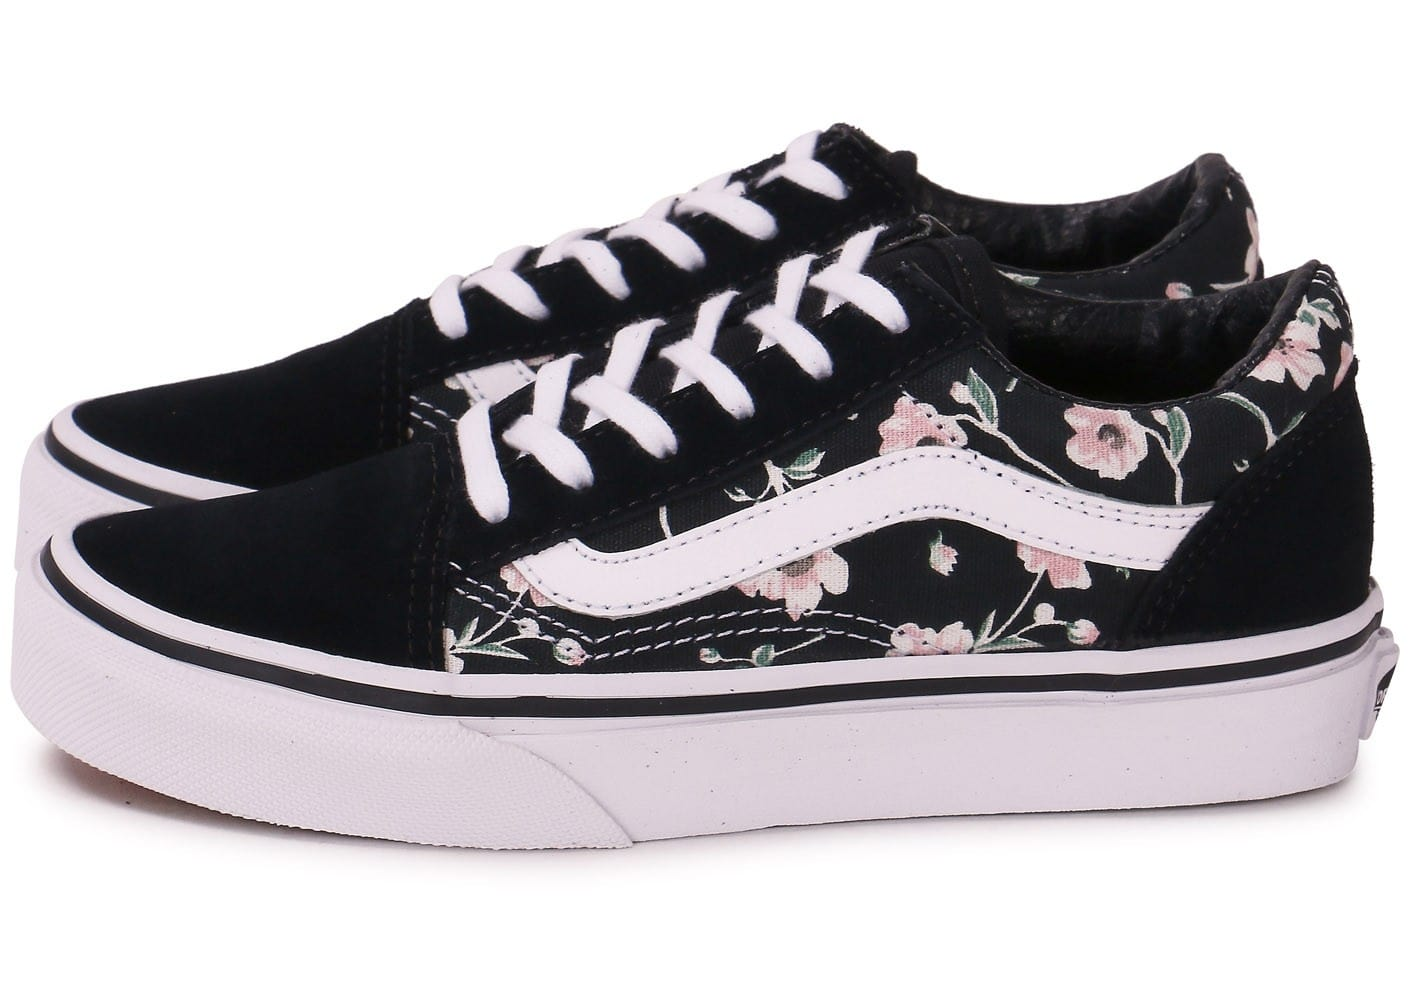 vans old skool enfant vintage floral chaussures. Black Bedroom Furniture Sets. Home Design Ideas